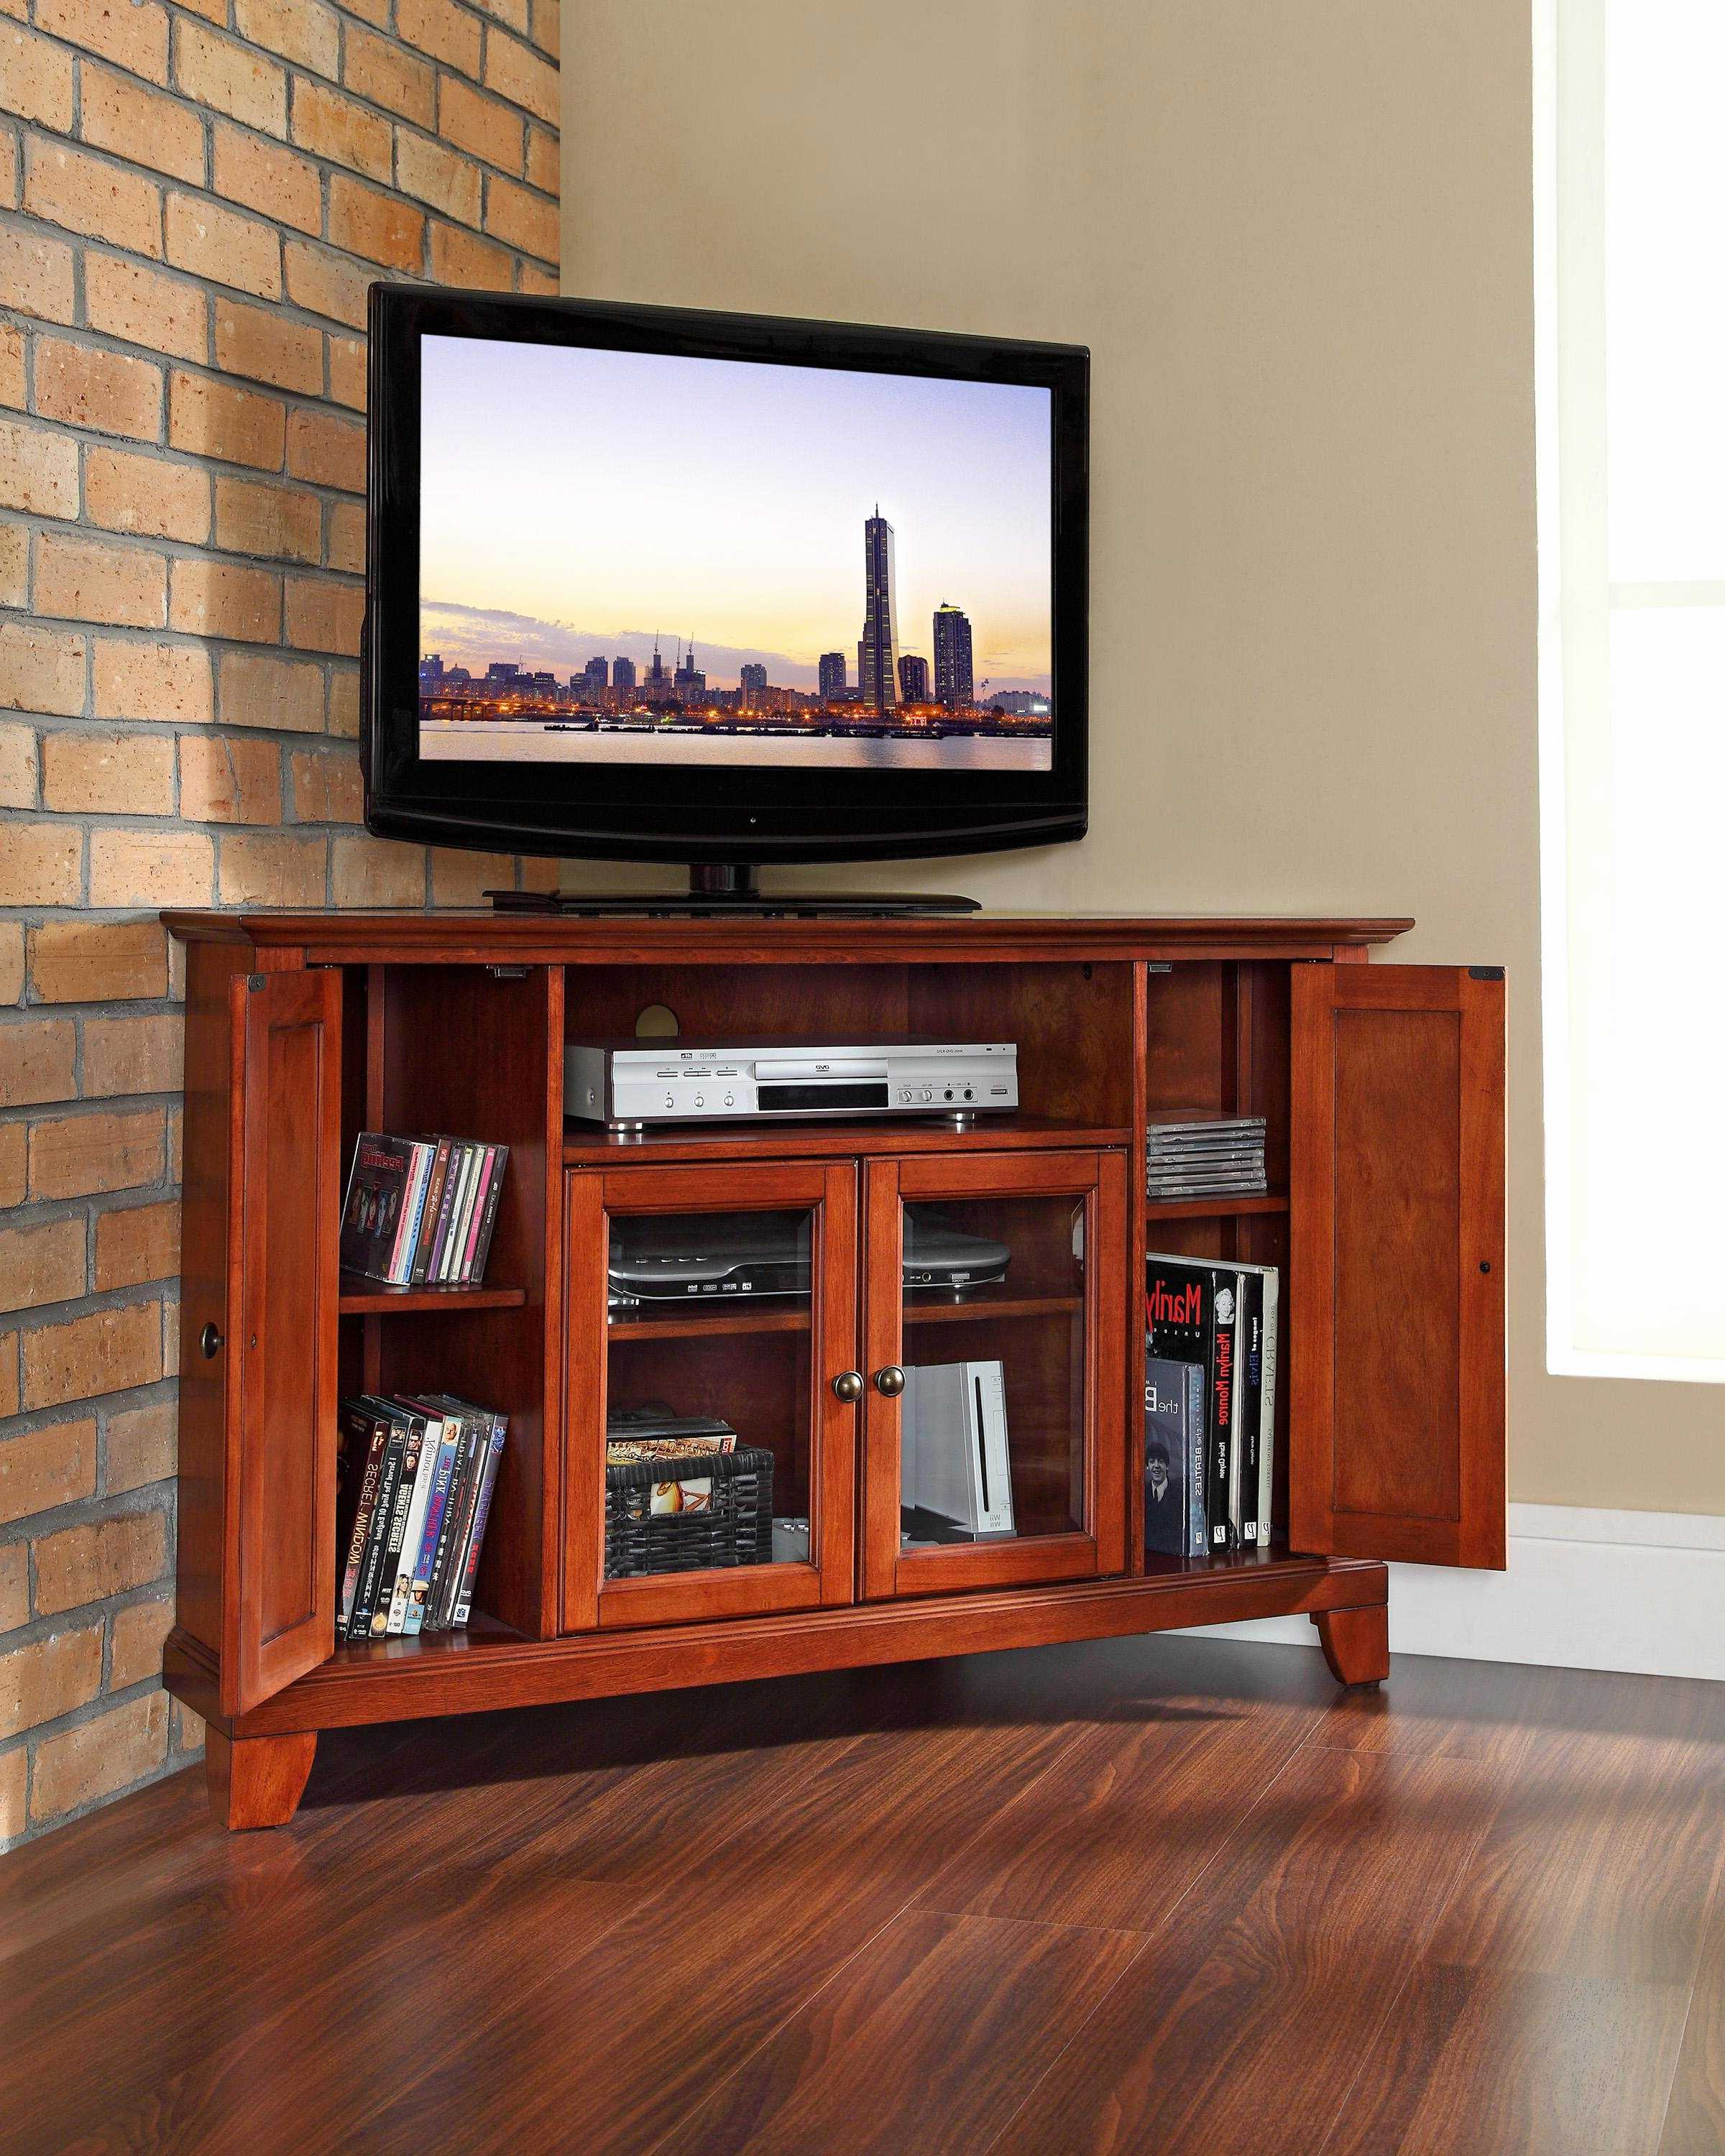 Newest Corner Tv Stands For 60 Inch Flat Screens With Corner Tv Stand For 60 Inch Flat Screen 65 Costco Fireplace Amazon (Gallery 3 of 20)